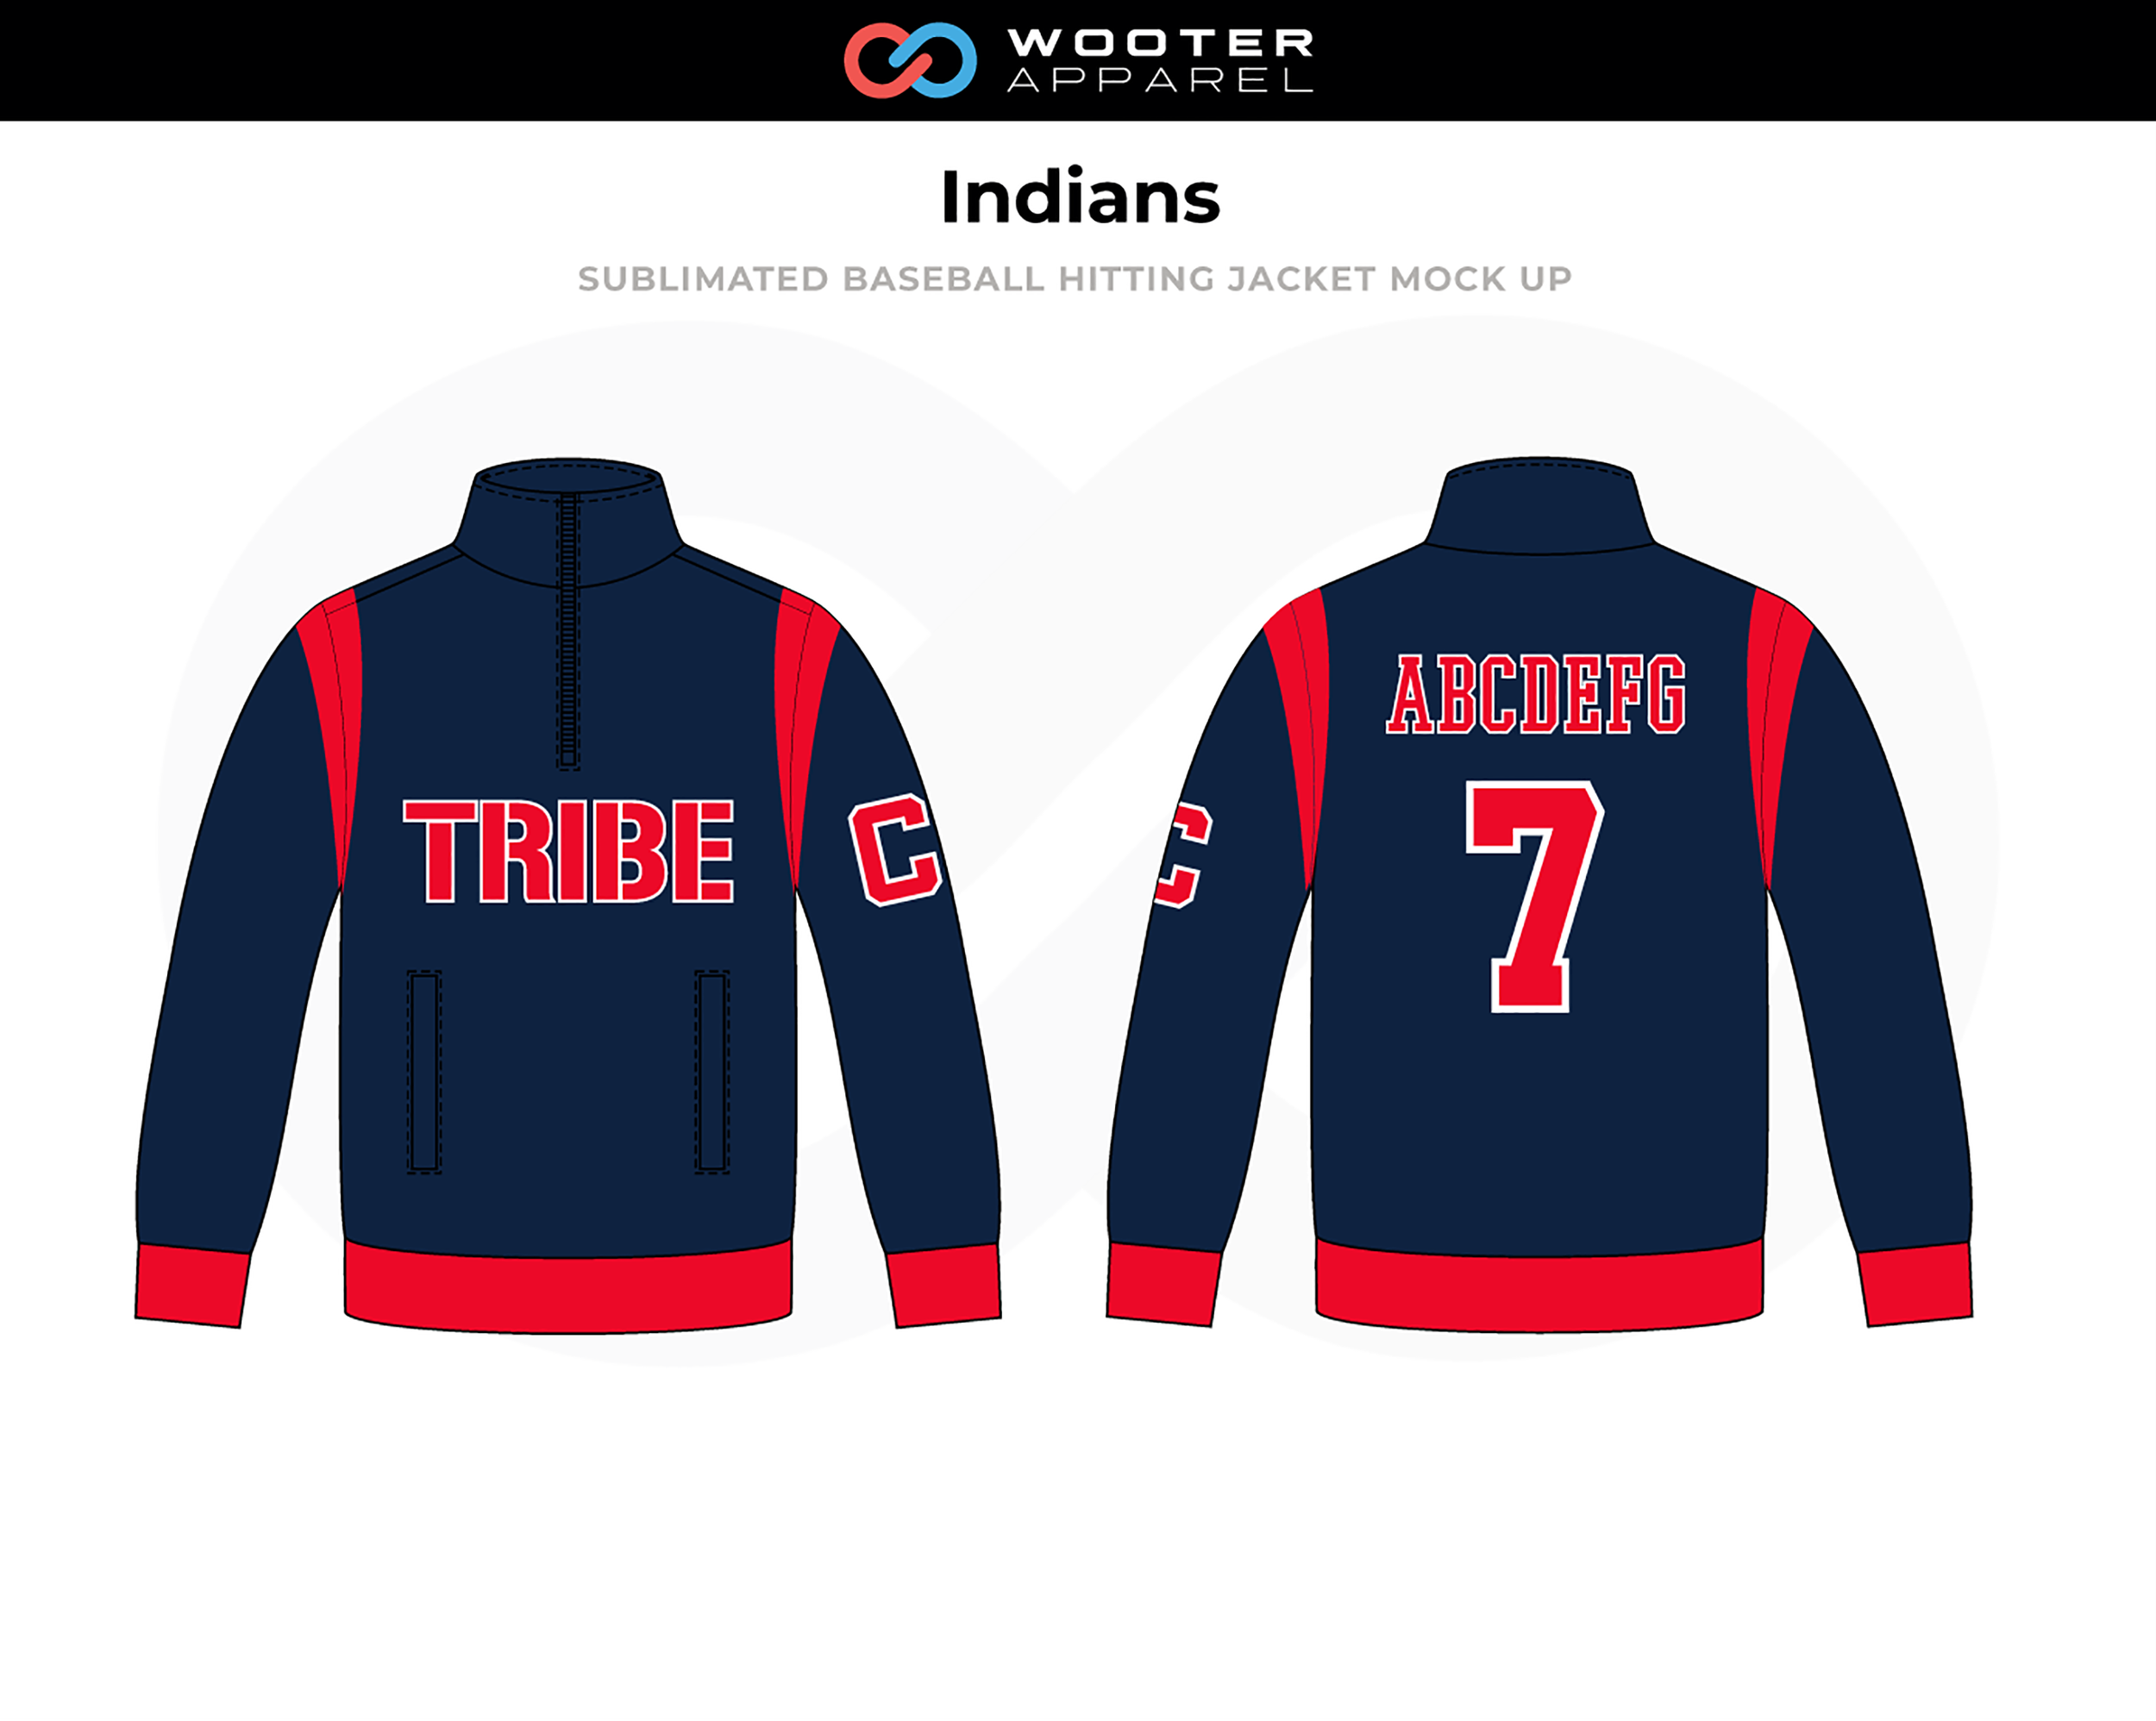 Indians-Sublimated-Baseball--Hitting-Jacket-7.png